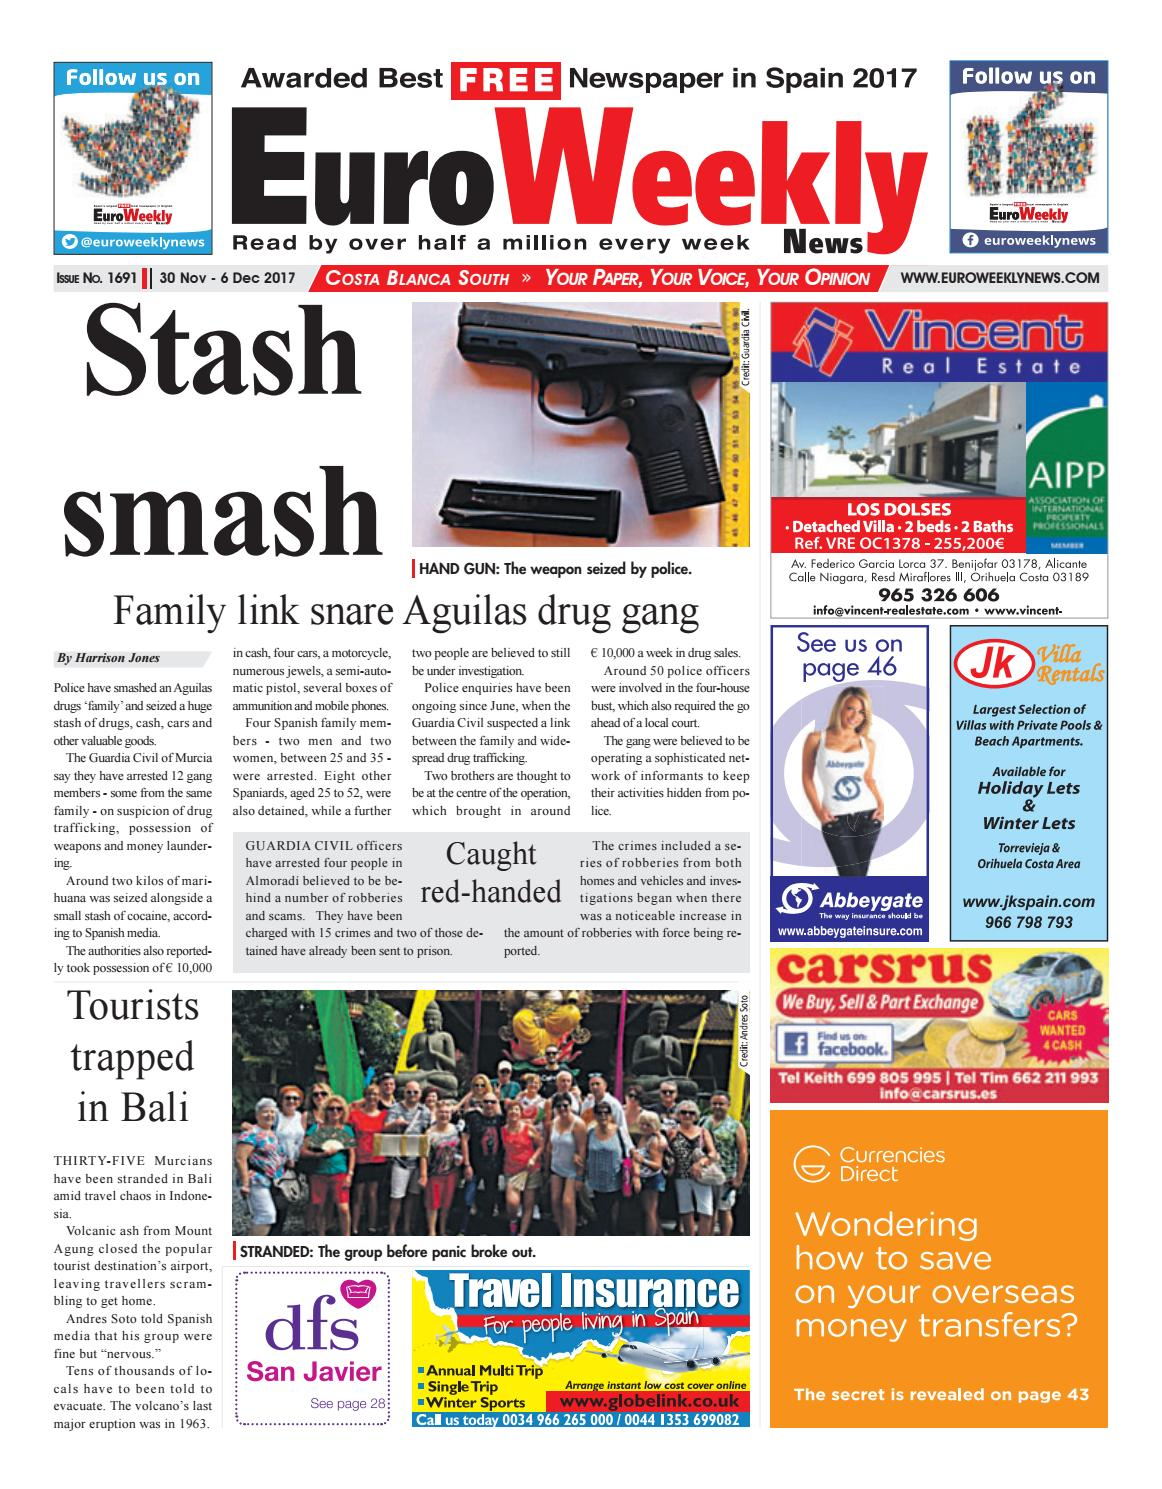 Euro weekly news costa blanca south 30 november 6 december 2017 euro weekly news costa blanca south 30 november 6 december 2017 issue 1691 by euro weekly news media sa issuu fandeluxe Choice Image